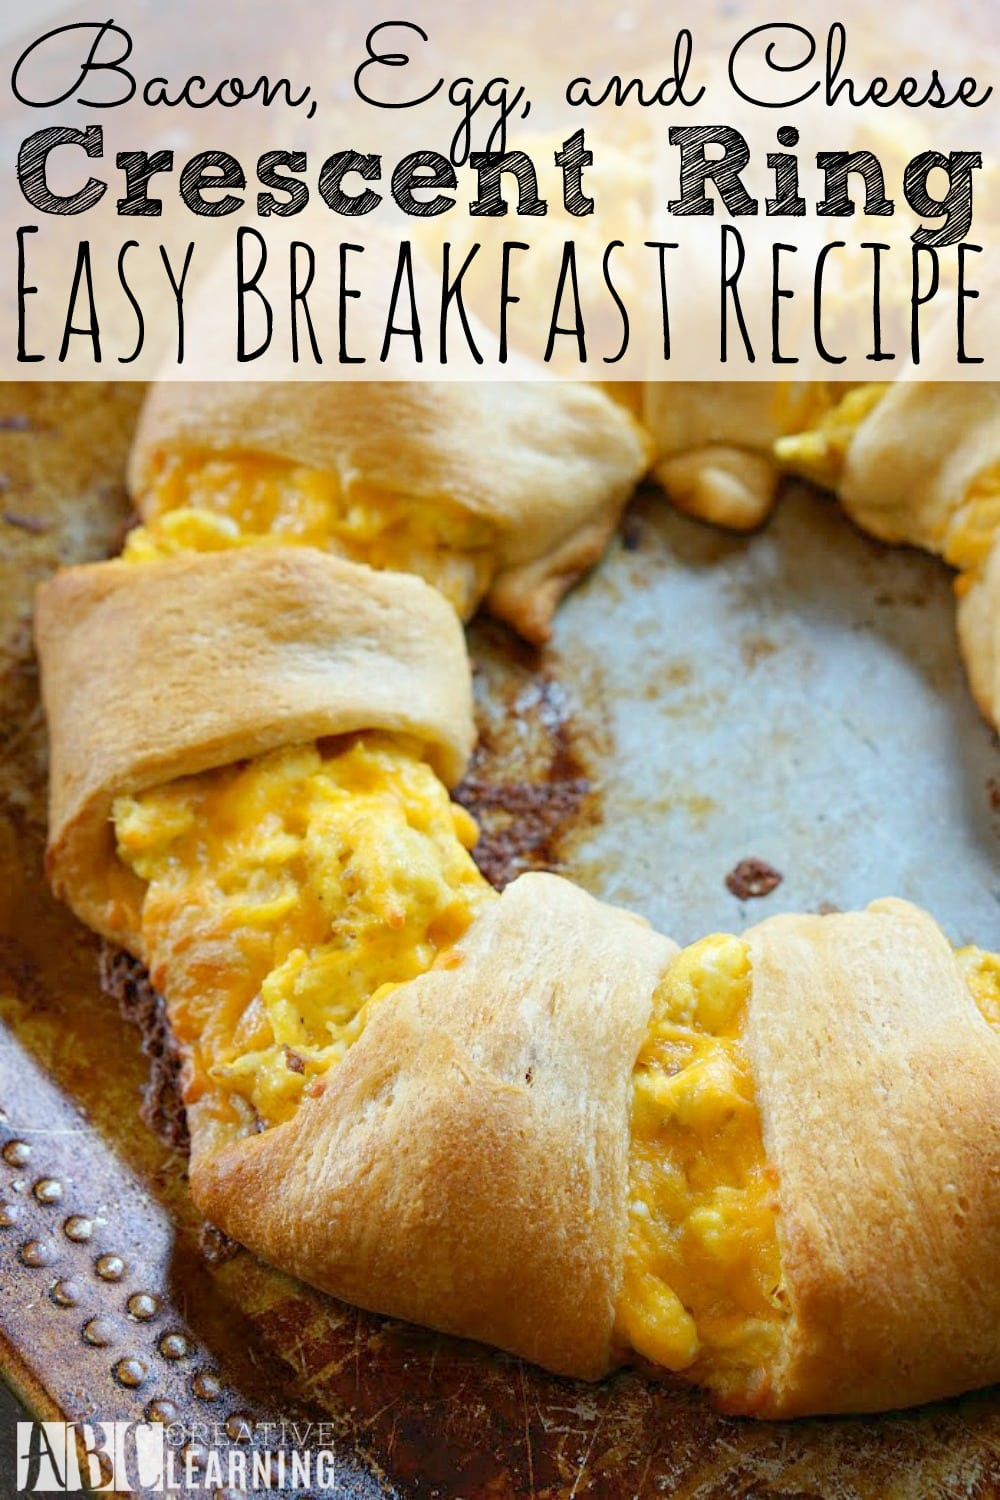 Bacon Egg and Cheese Crescent Ring Recipe - abccreativelearning.com